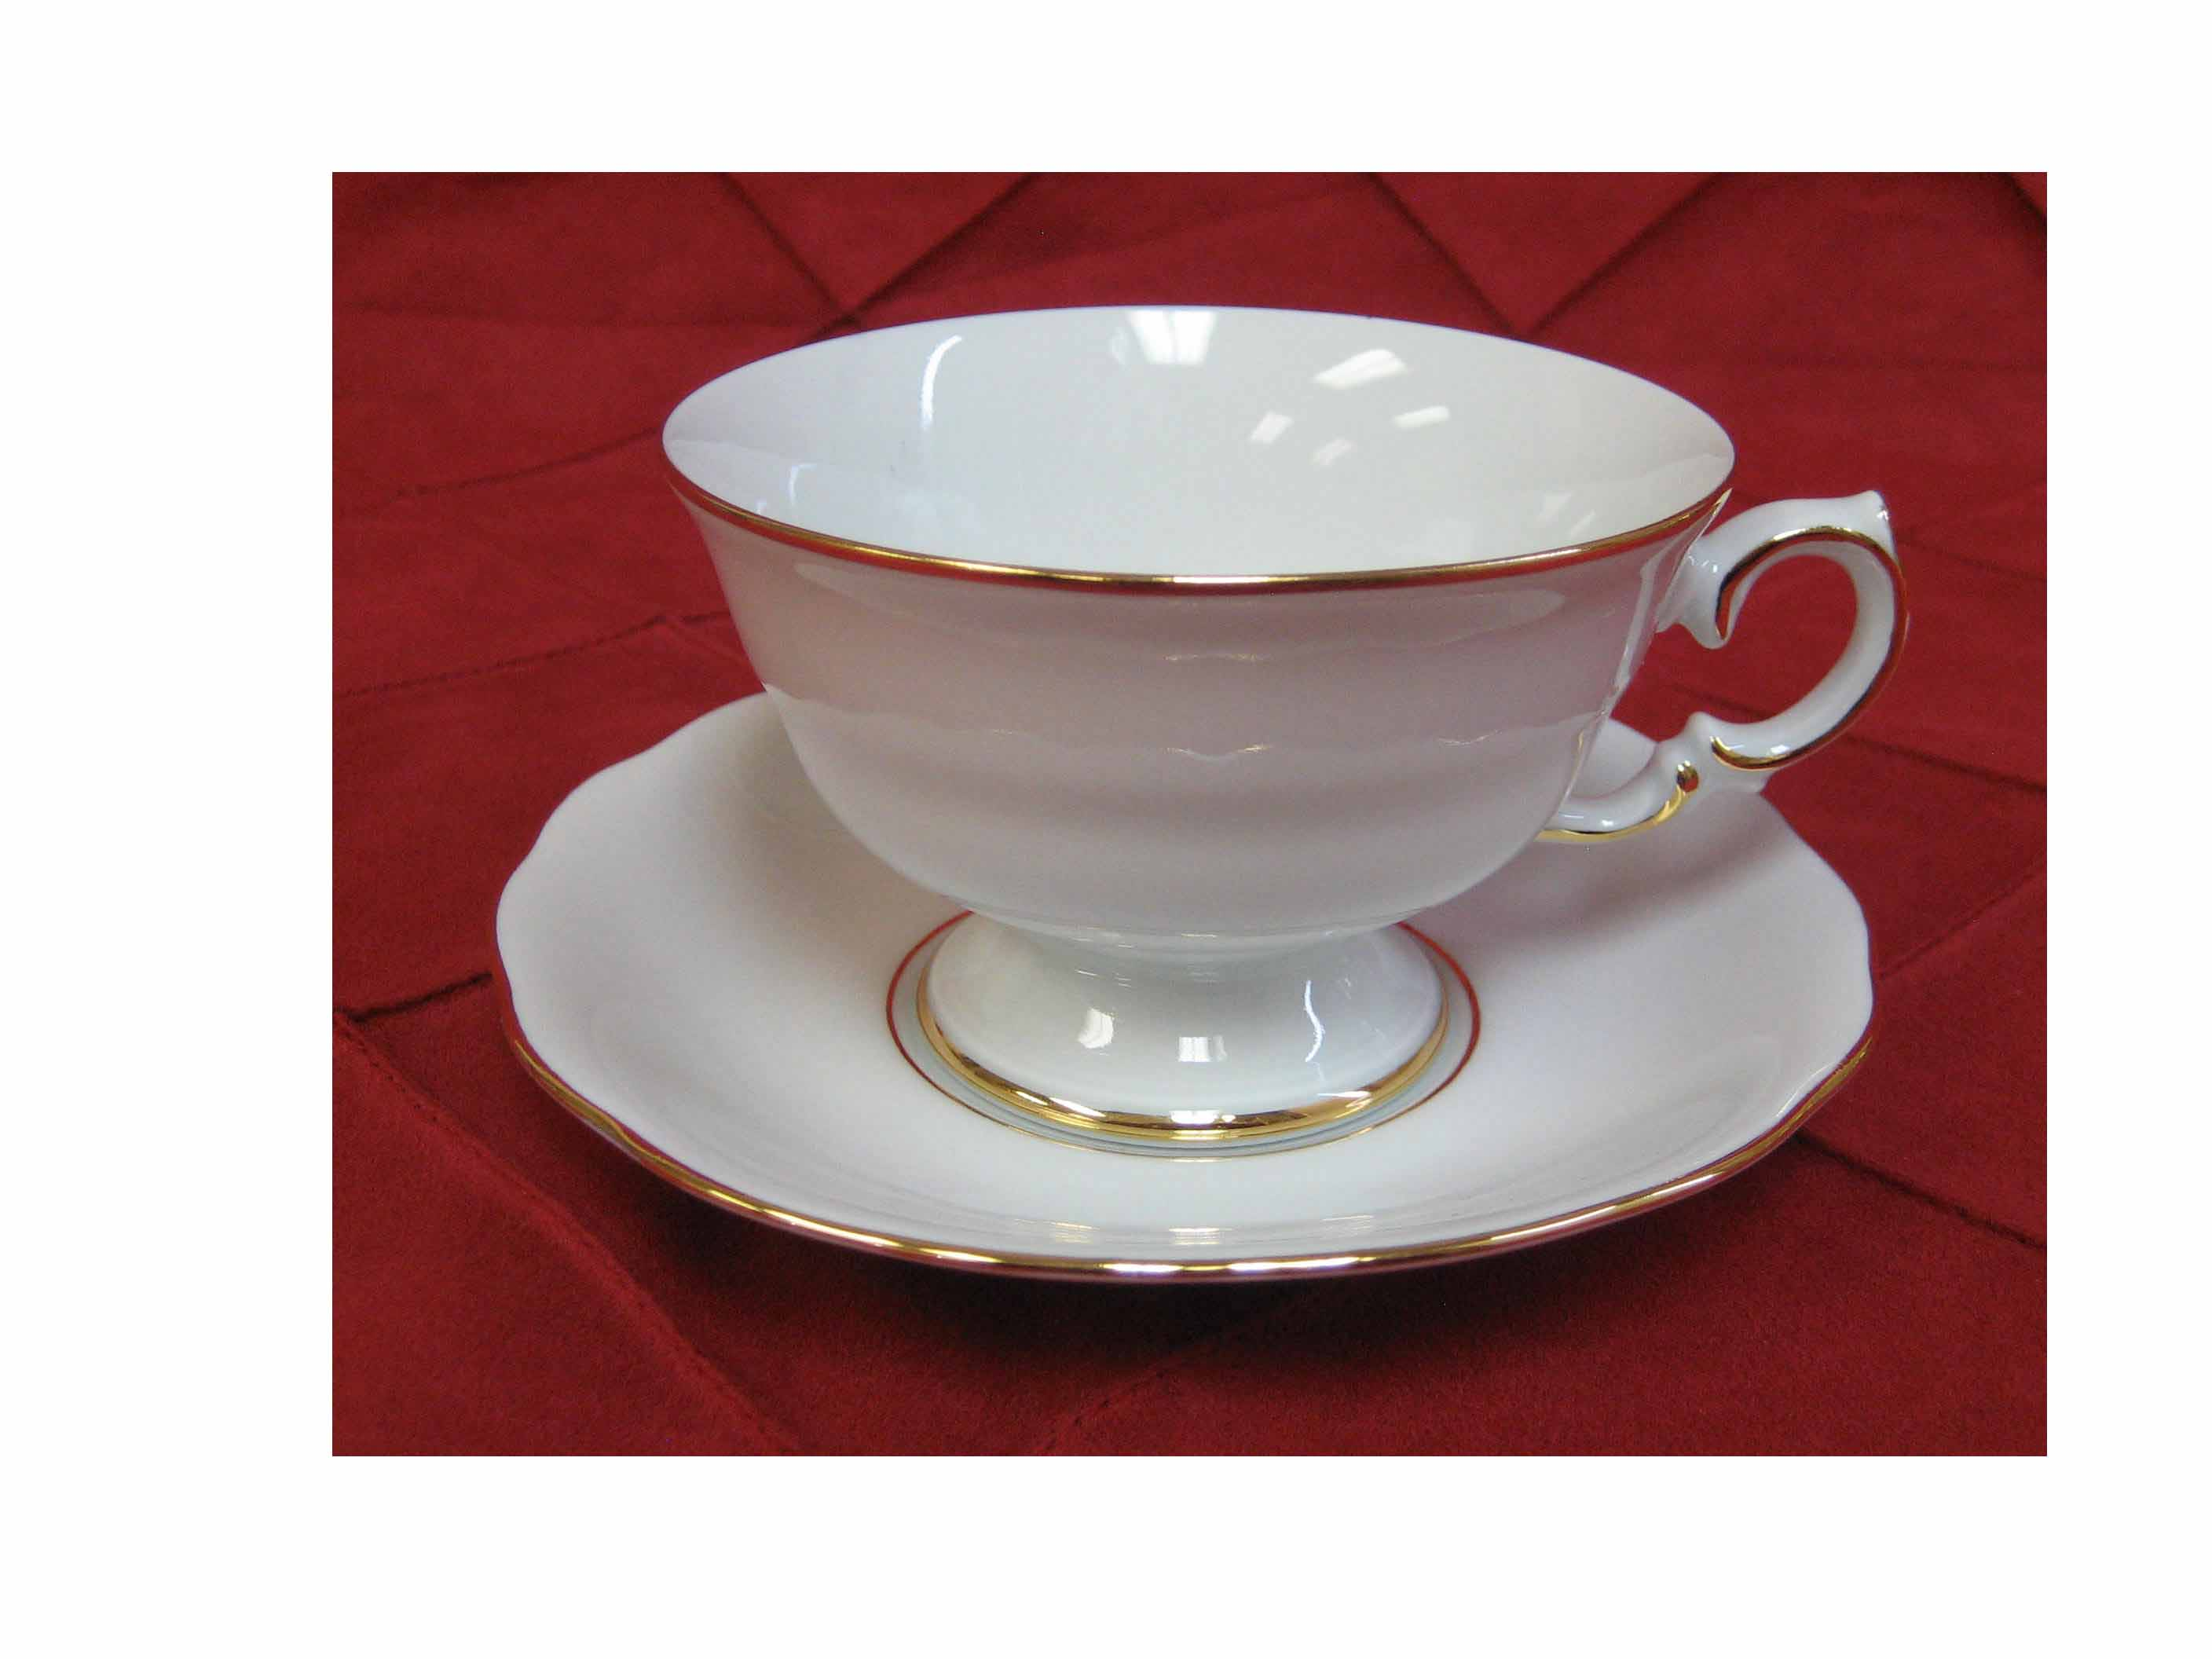 GTCS7 GOLD RIM TEA CUP AND SAUCER